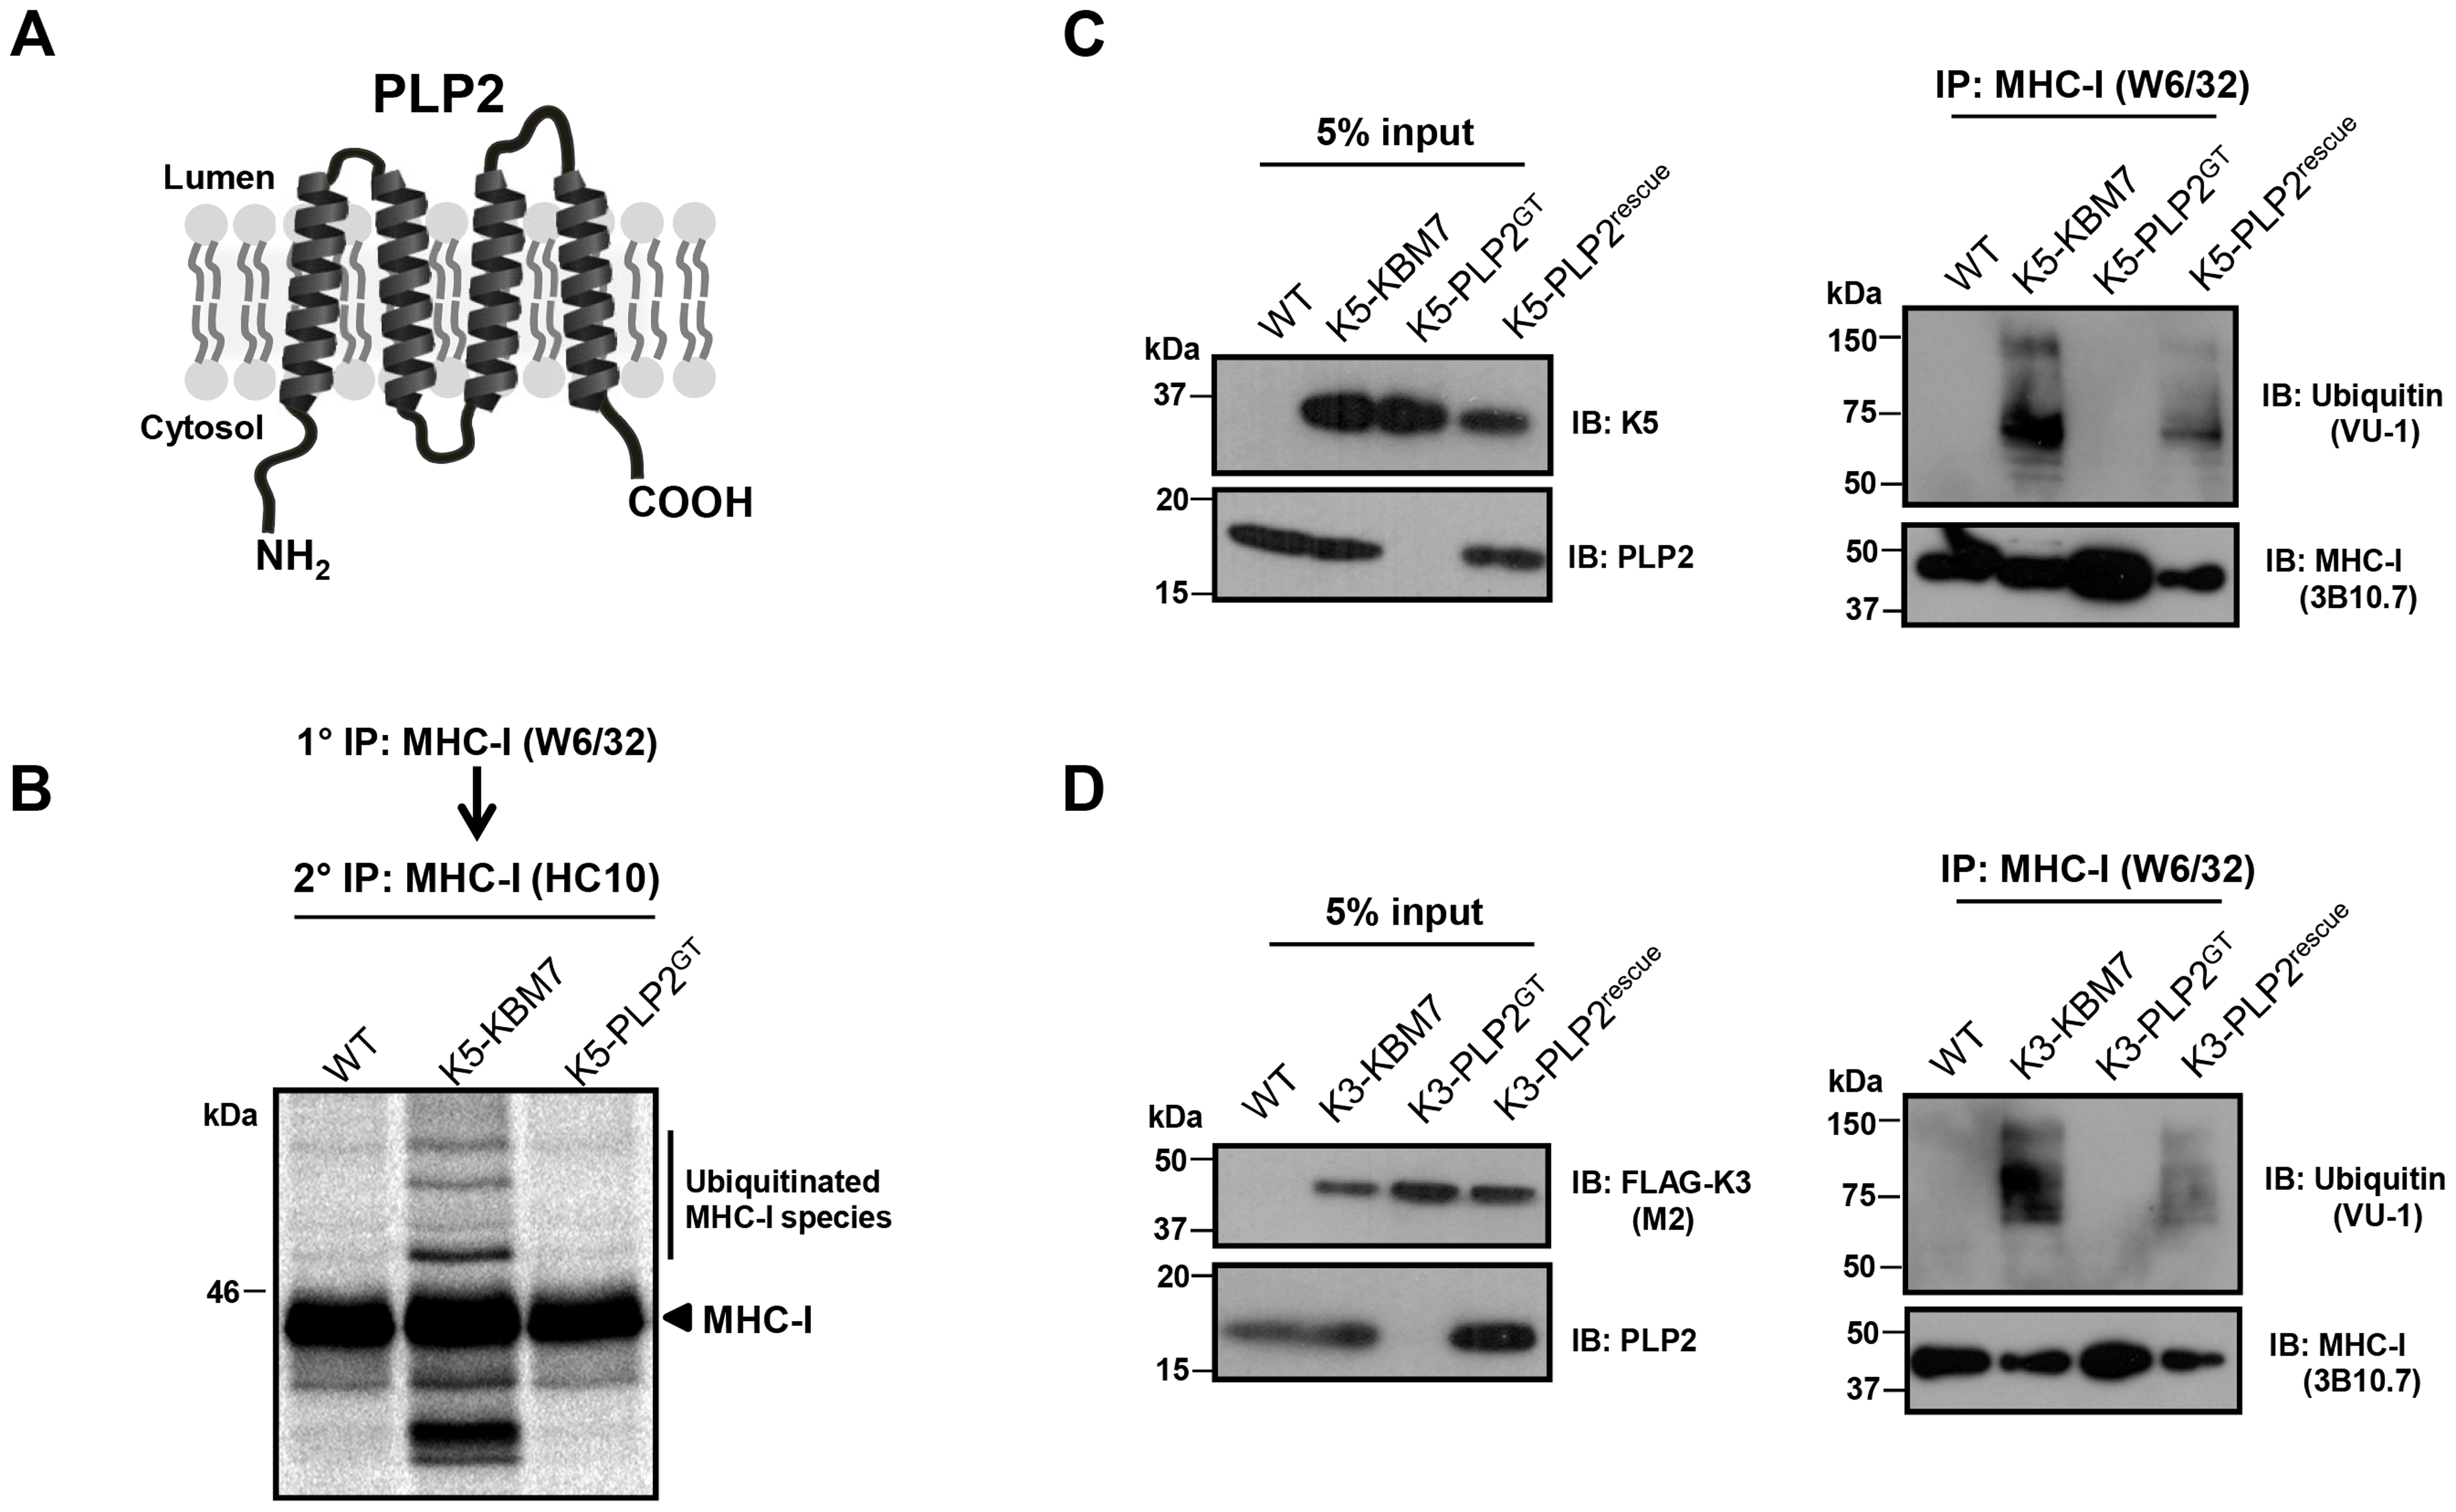 PLP2 is required for K3 and K5 to ubiquitinate their substrate MHC-I.